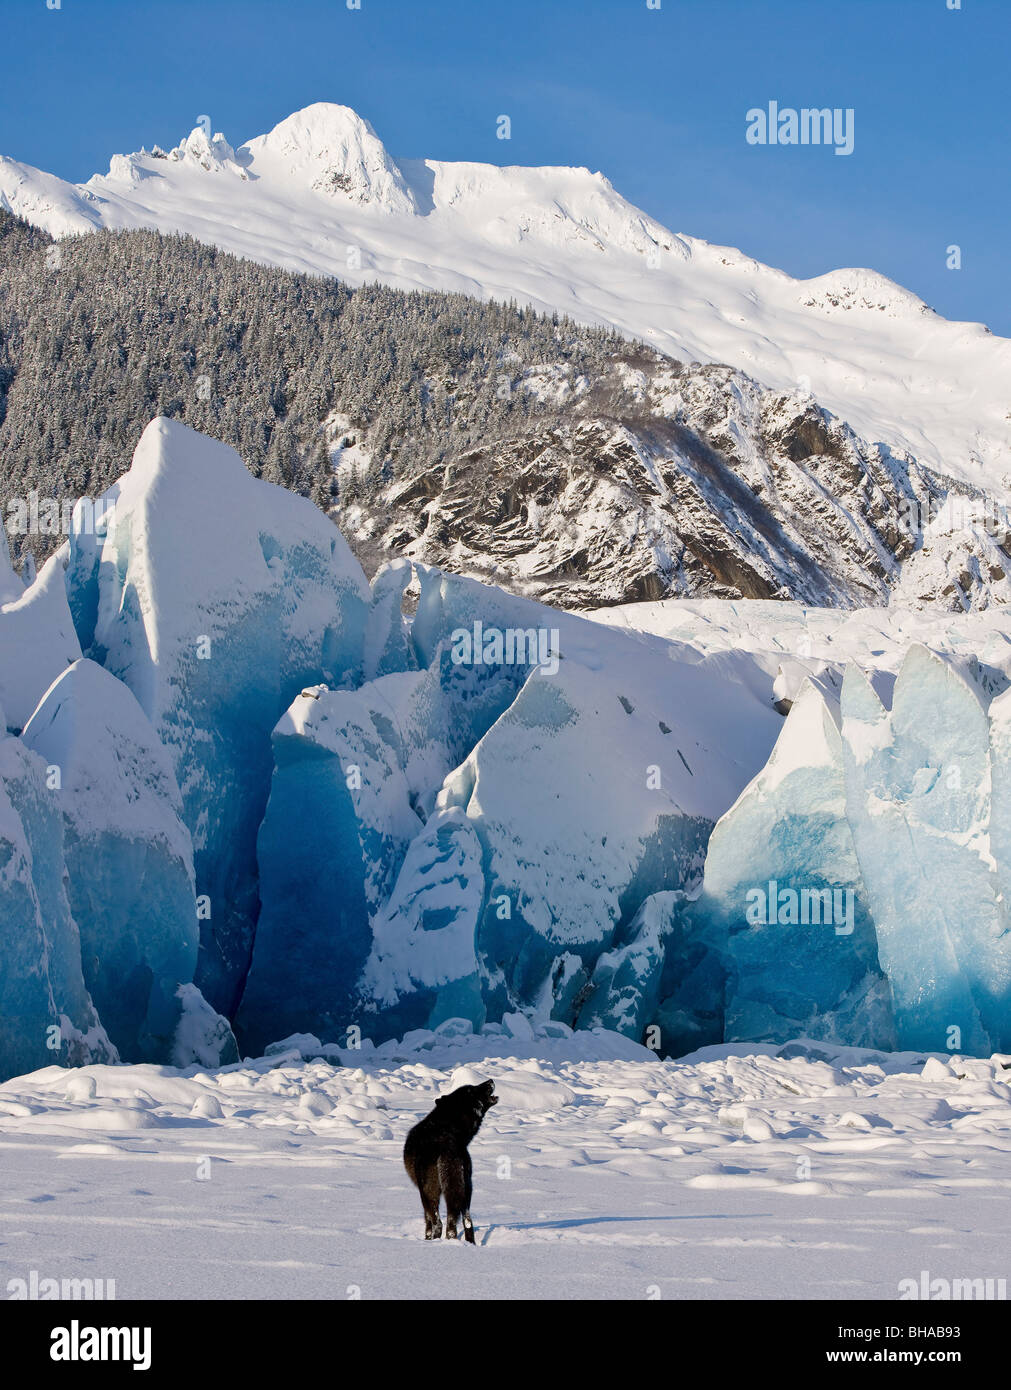 Howling on a winter afternoon a black wolf calls pack at the face of Mendenhall Glacier, Tongass Forest, Alaska. - Stock Image